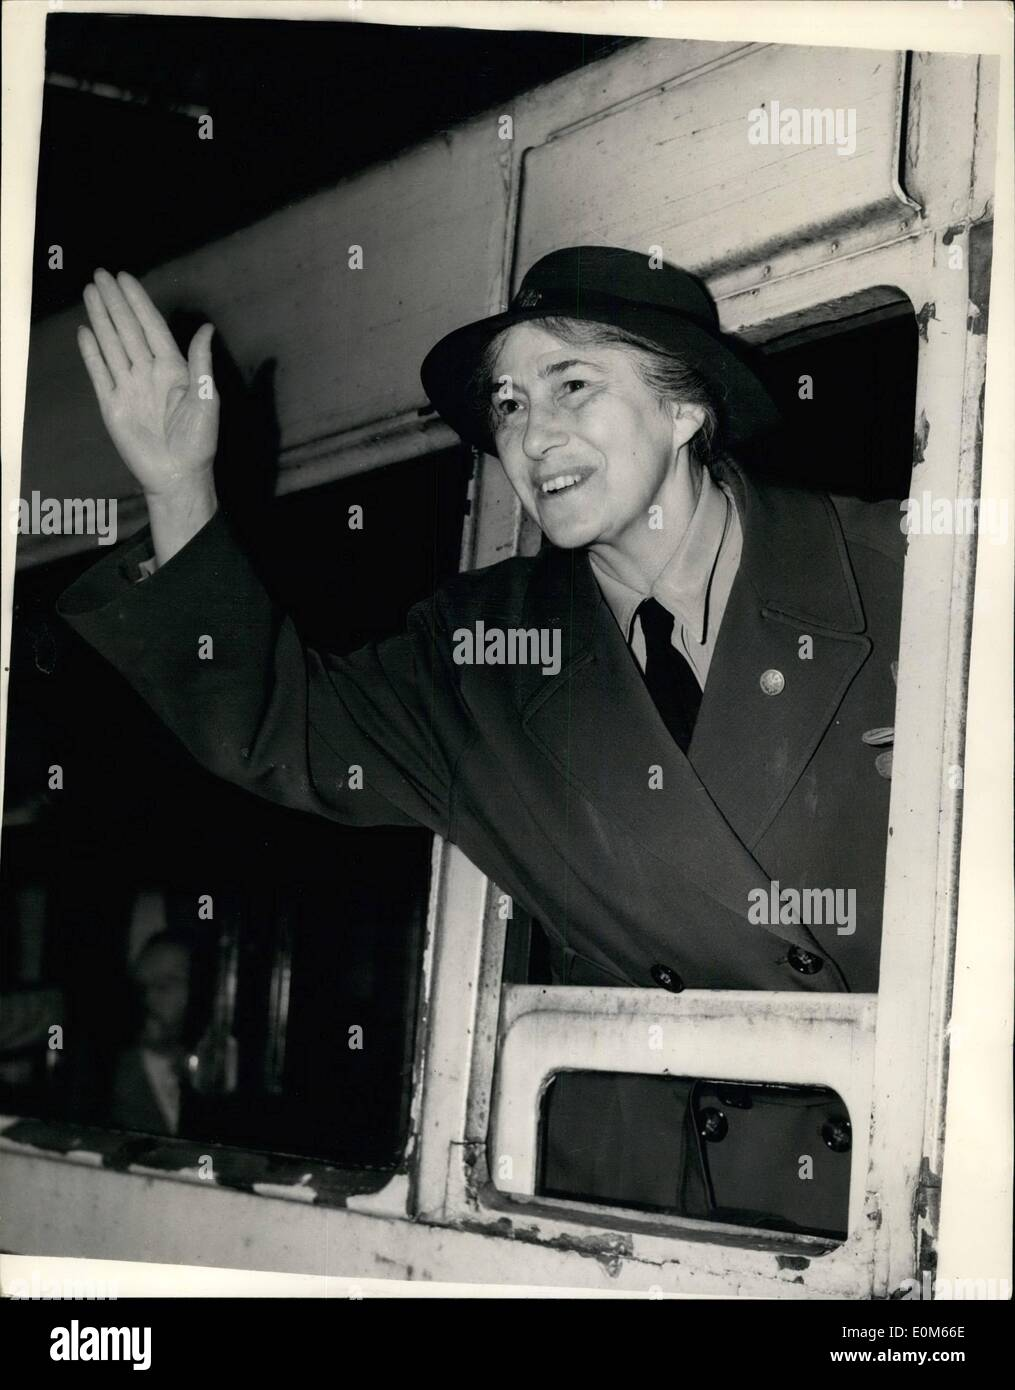 Sep. 09, 1953 - Lady Baden. Powel Leaves for Quebec World Chief Guide: Photo shows Lady Baden. Powel the Wold Chief Guide. seen when she left Waterloo Station this morning on the Samaria Boat train for Quebec. - Stock Image